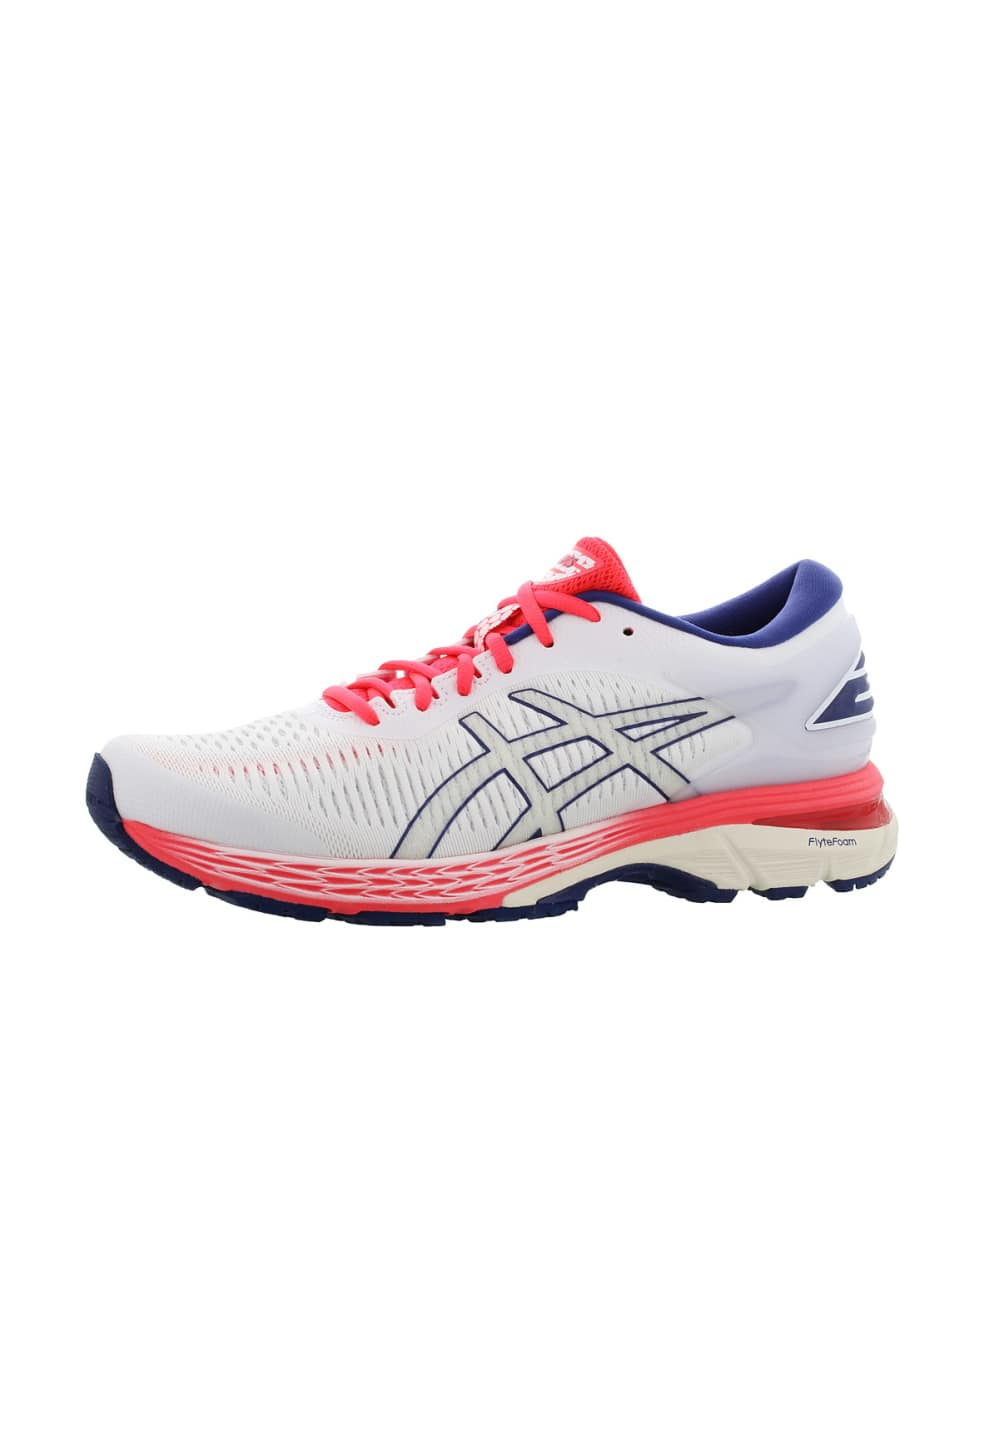 Nouveaux produits bf5d1 13b28 ASICS GEL-Kayano 25 - Running shoes for Women - White